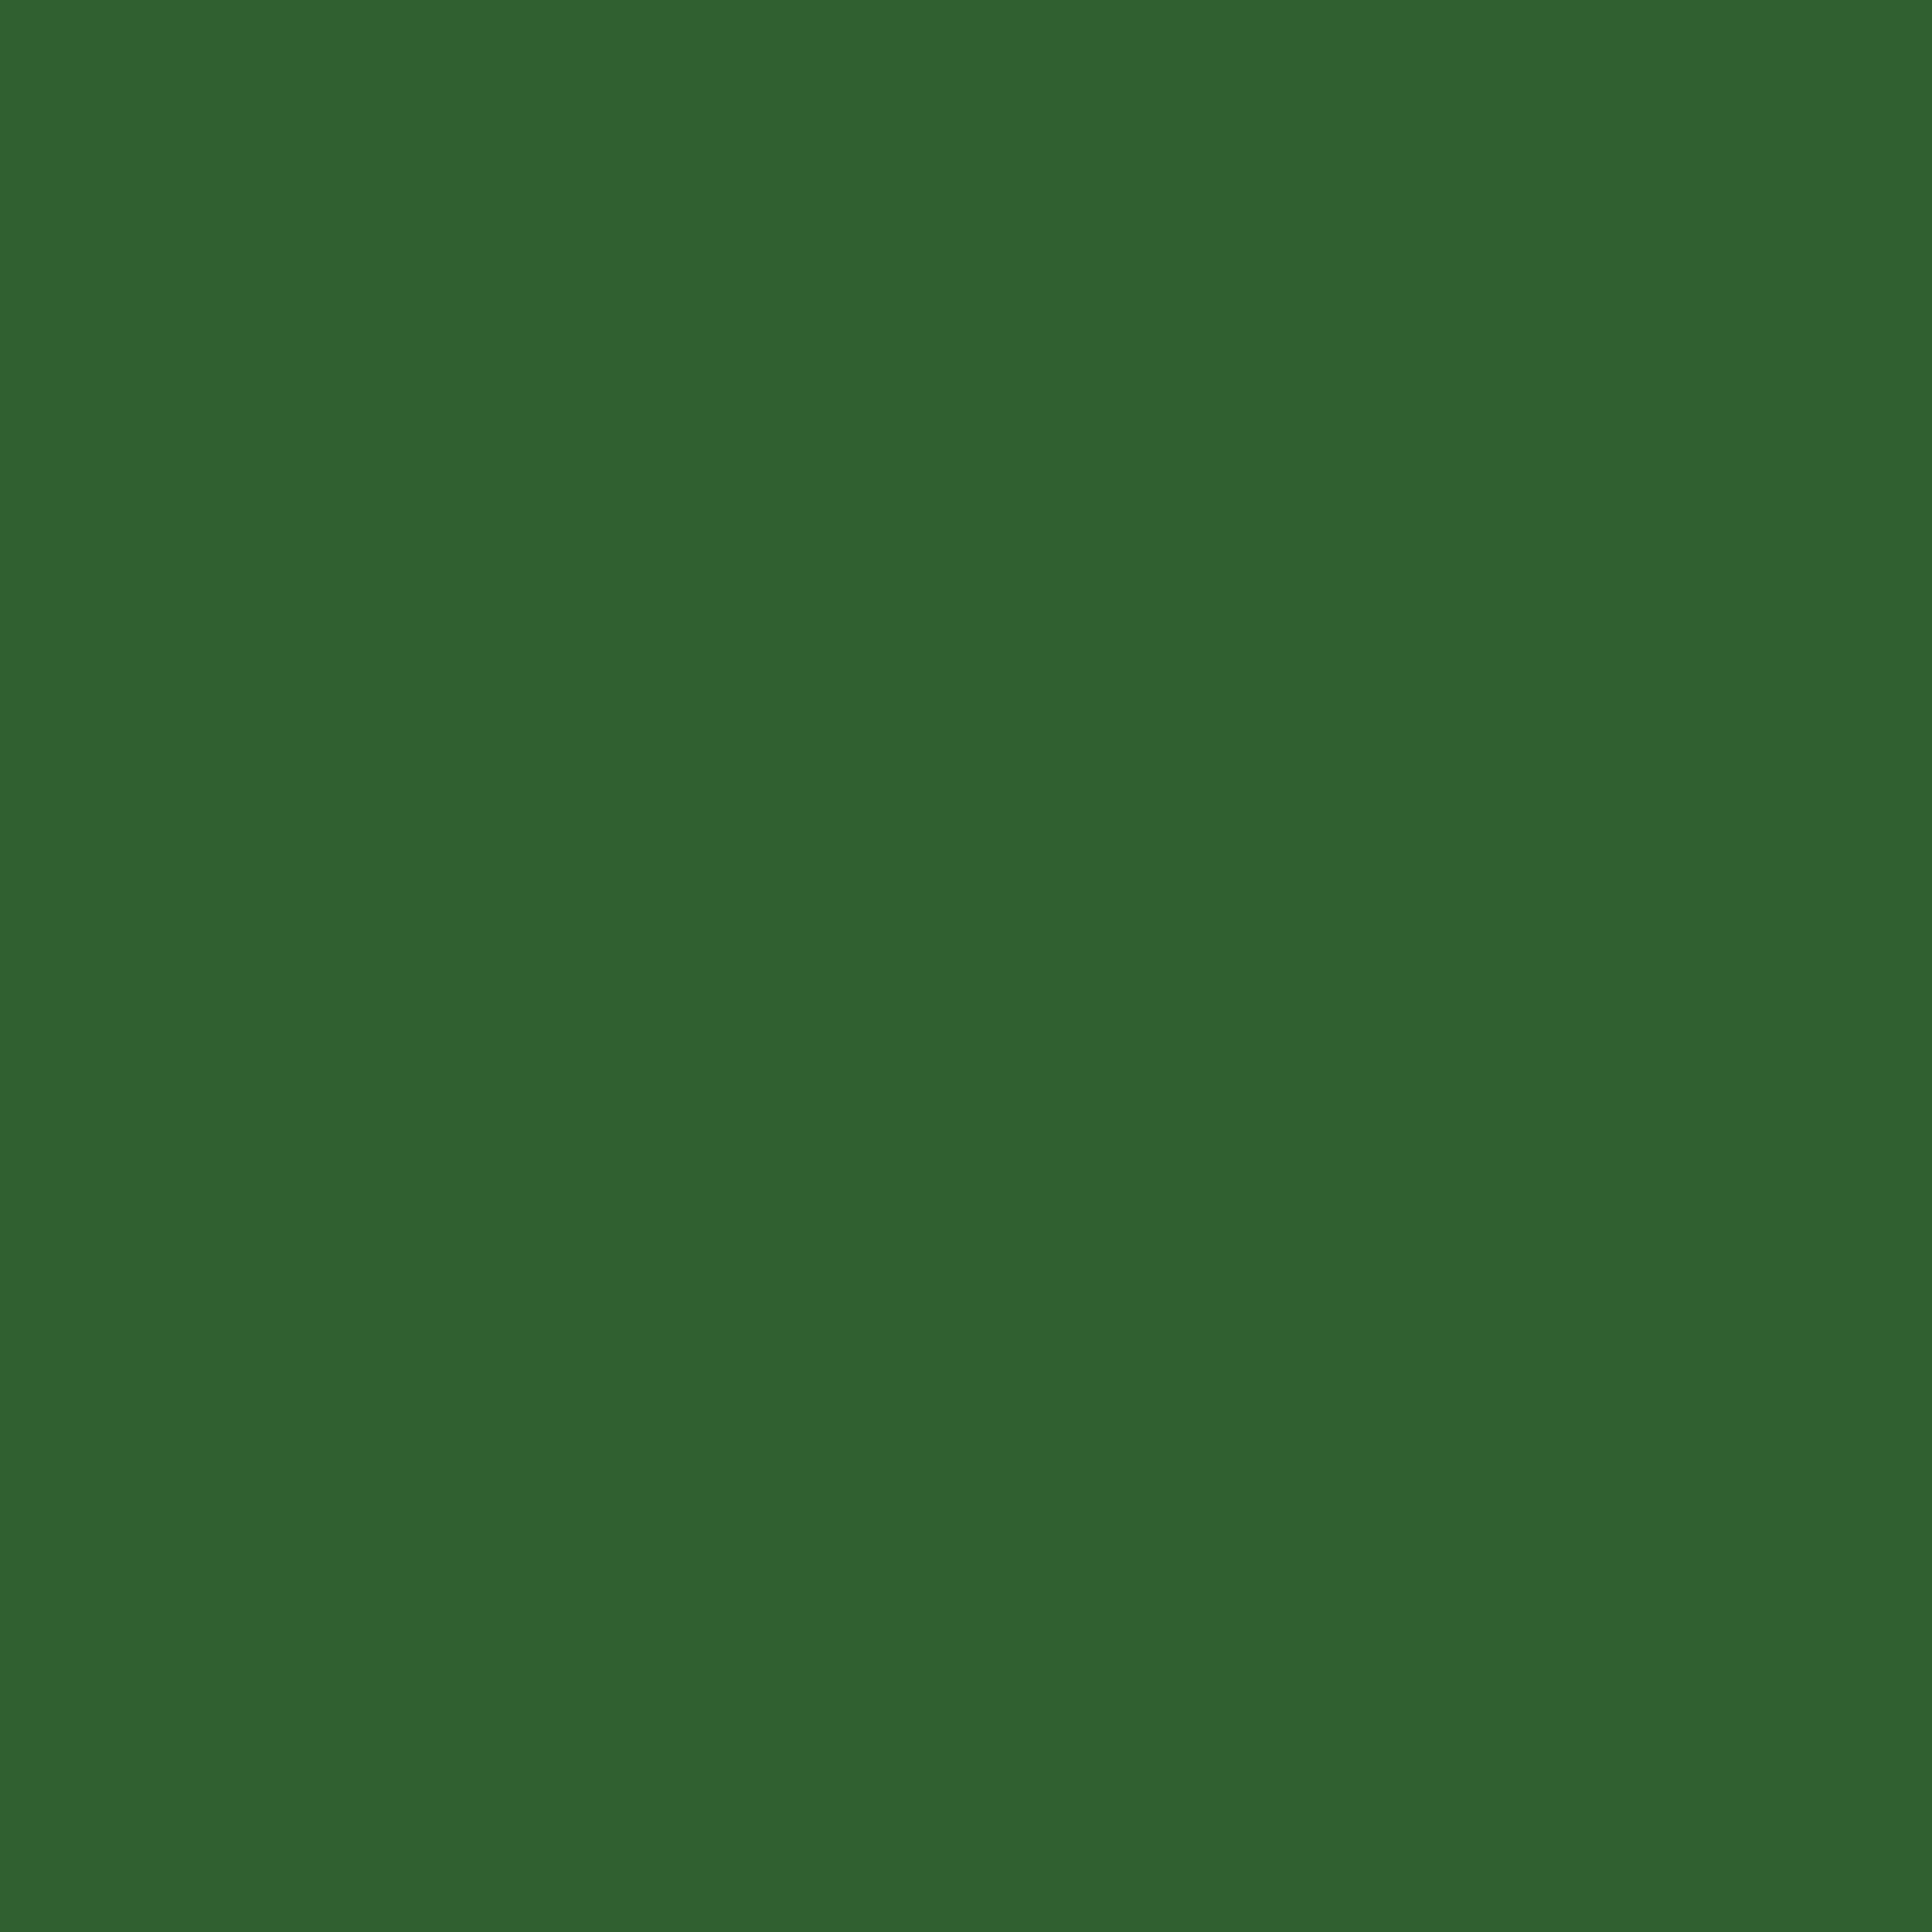 2732x2732 Mughal Green Solid Color Background